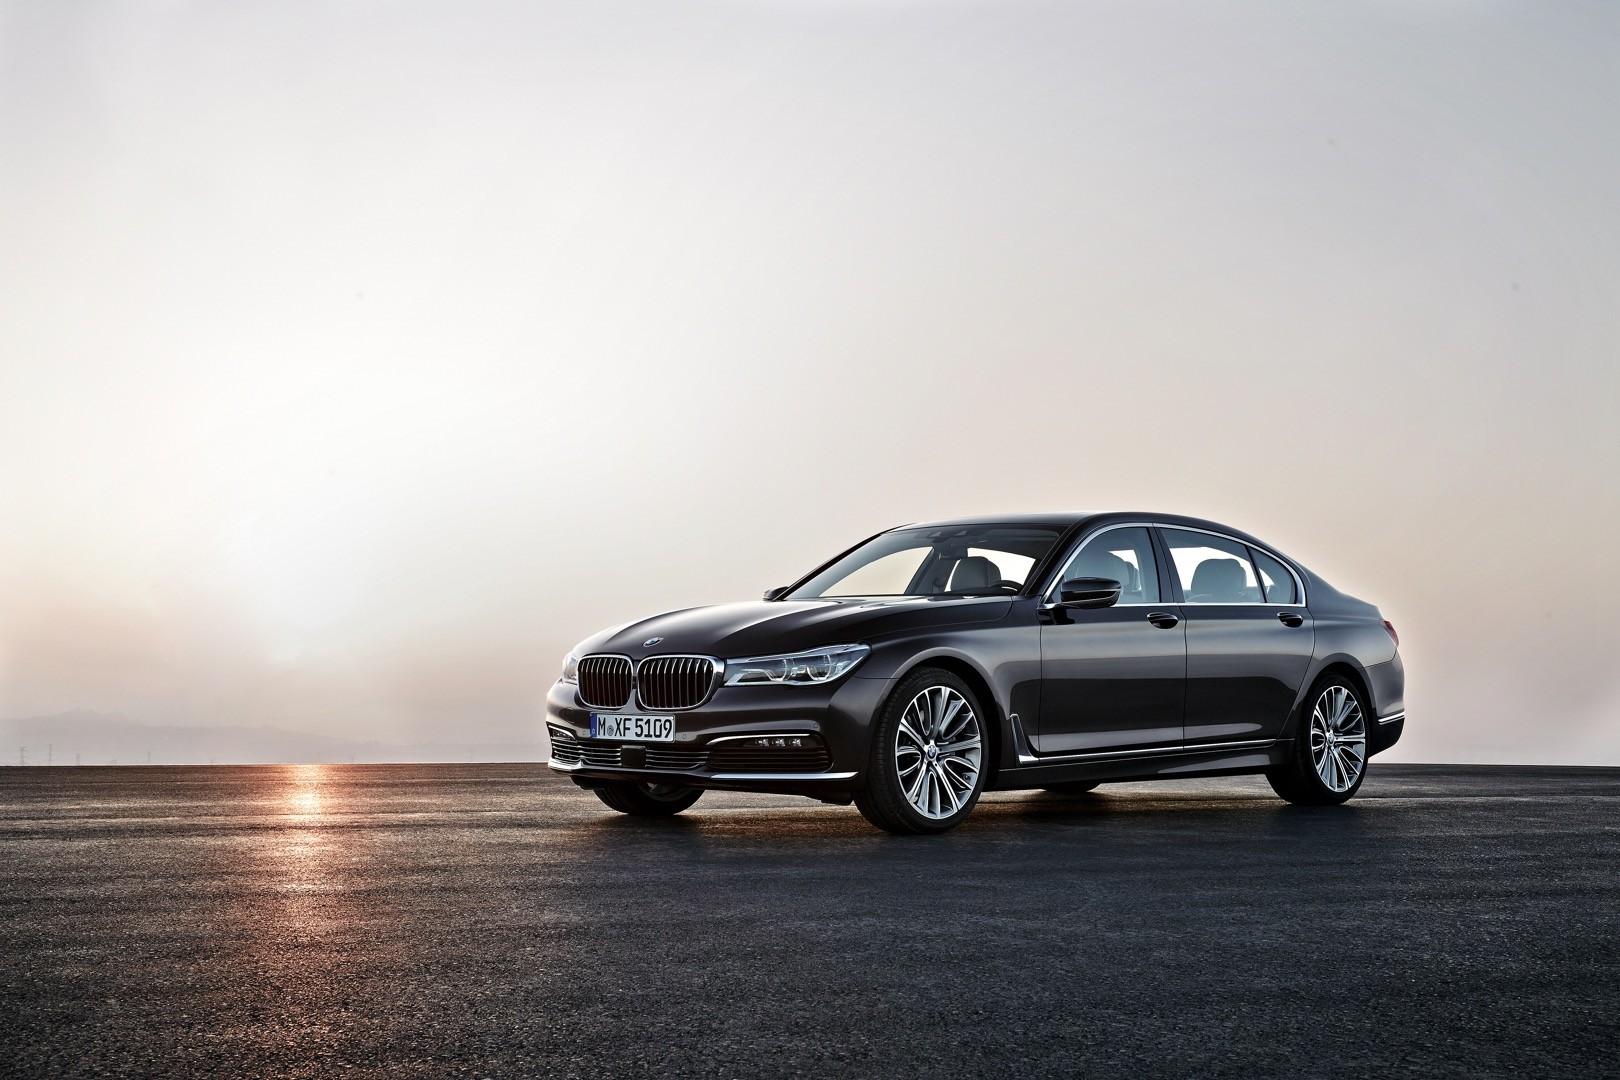 2016-bmw-7-series-finally-officially-unveiled-the-good-stuffs-inside-photo-gallery_11